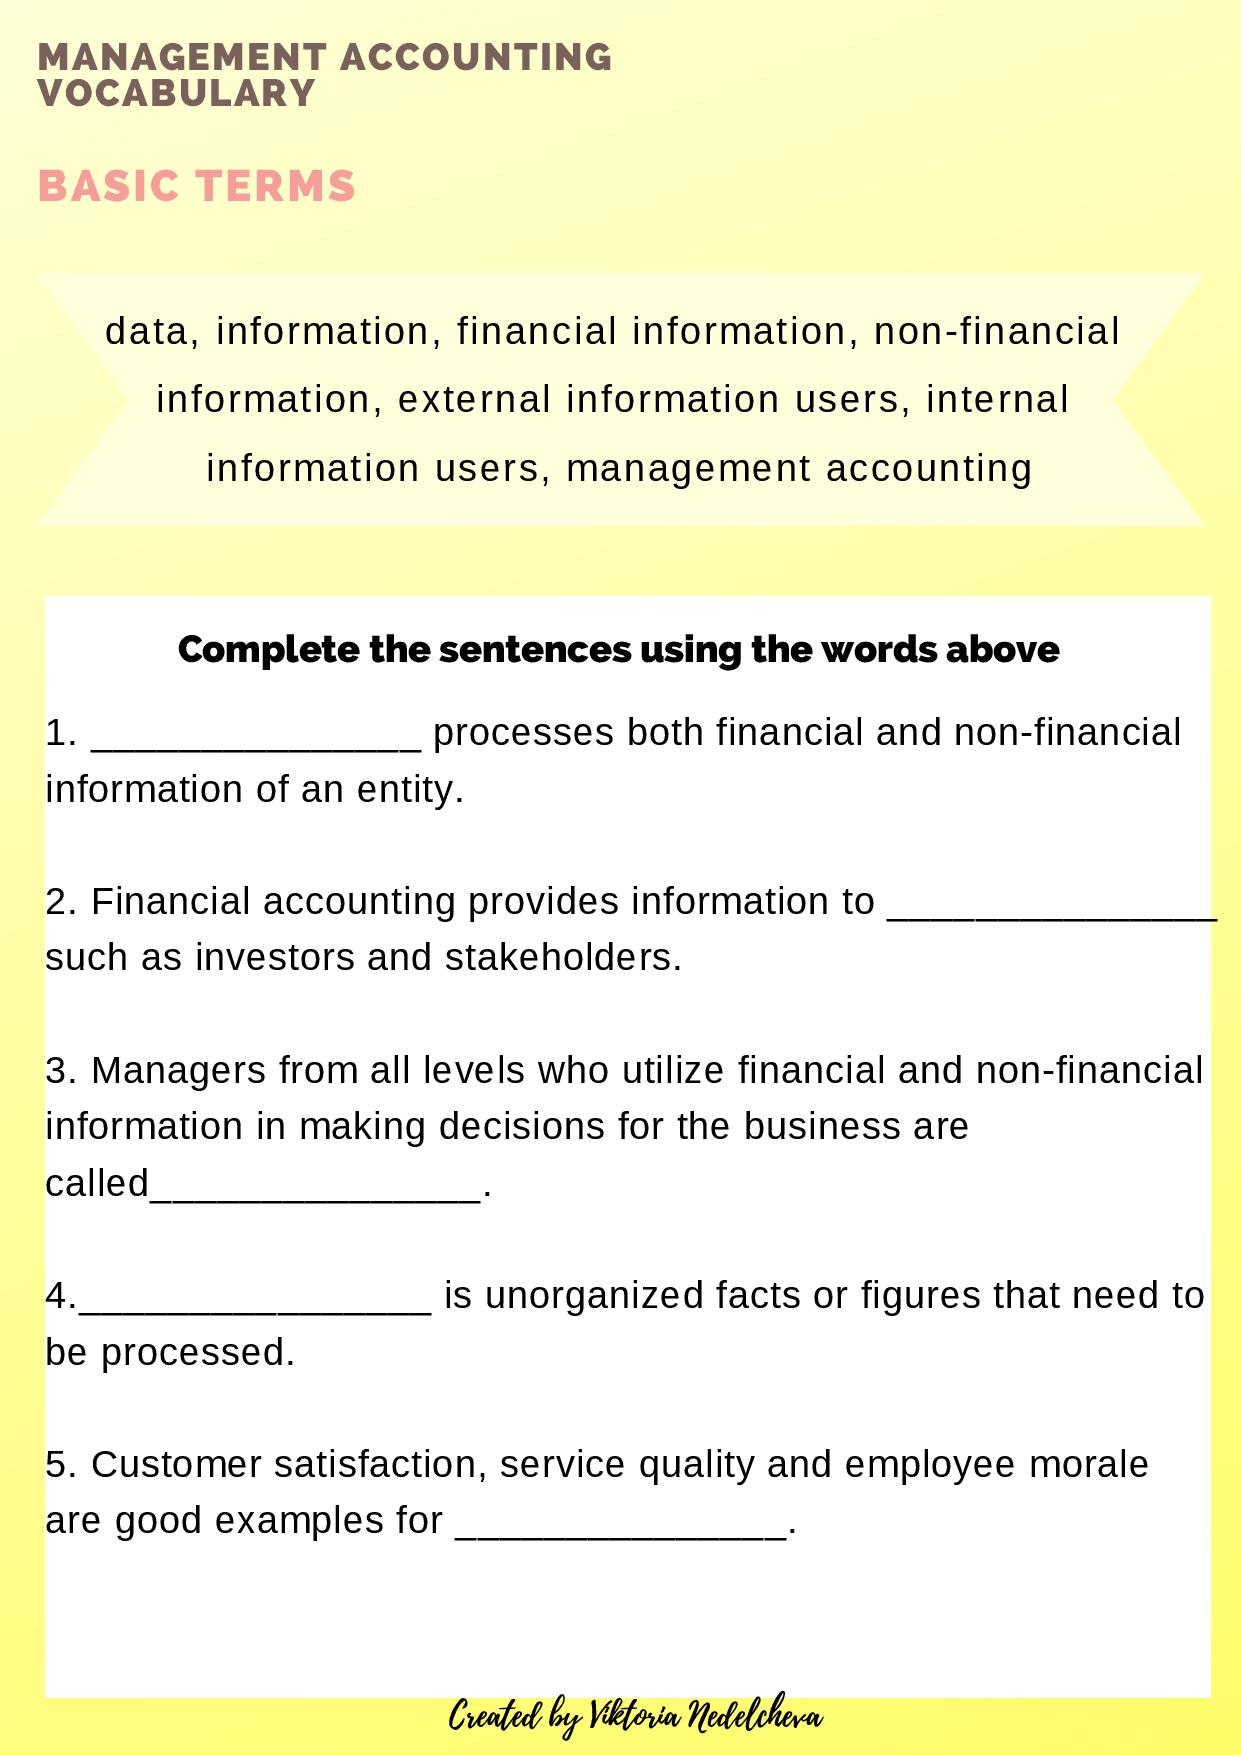 Management Accounting Vocabulary